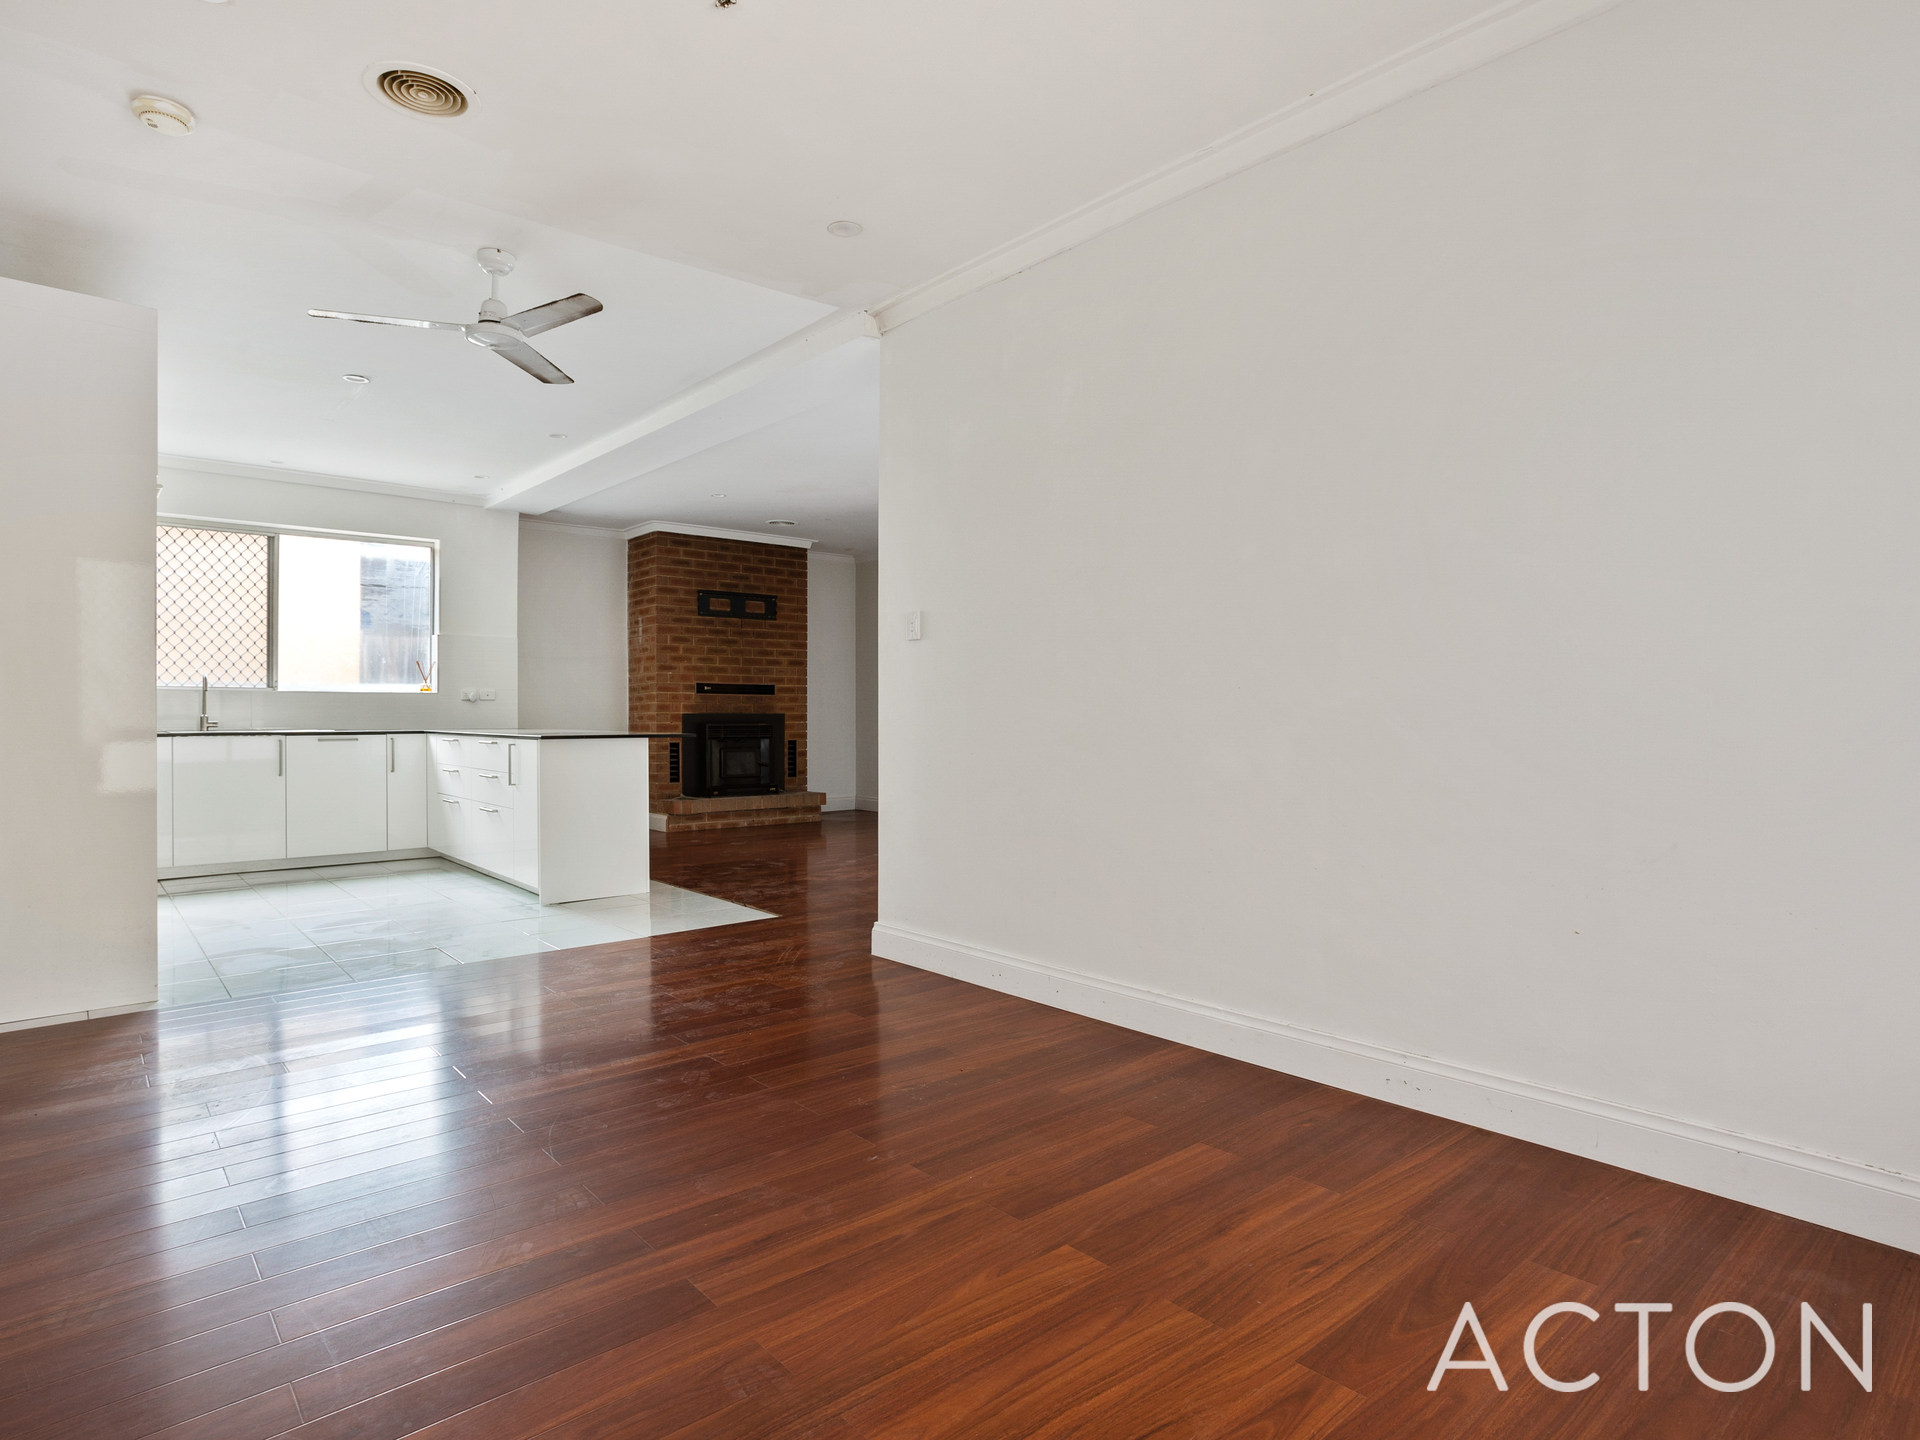 66 Grosvenor Road Mount Lawley - House For Sale - 20476198 - ACTON Mount Lawley